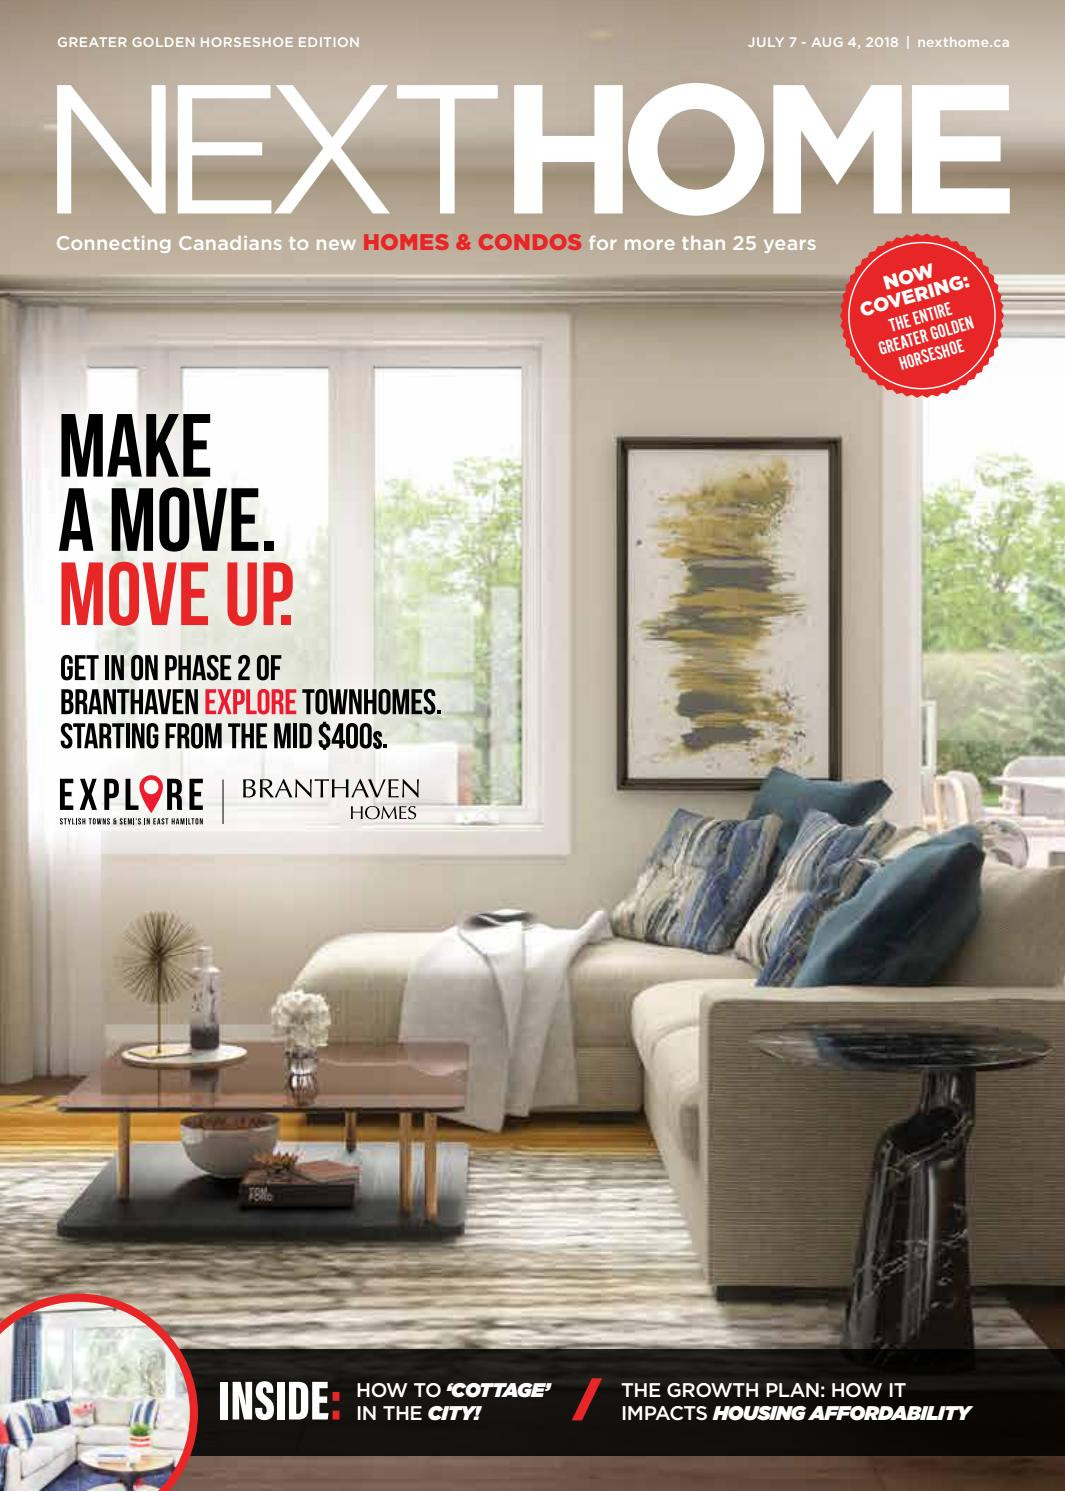 canada hardwood flooring pickering of southwestern ontario new home and condo guide jul 7 2018 by with regard to southwestern ontario new home and condo guide jul 7 2018 by nexthome issuu